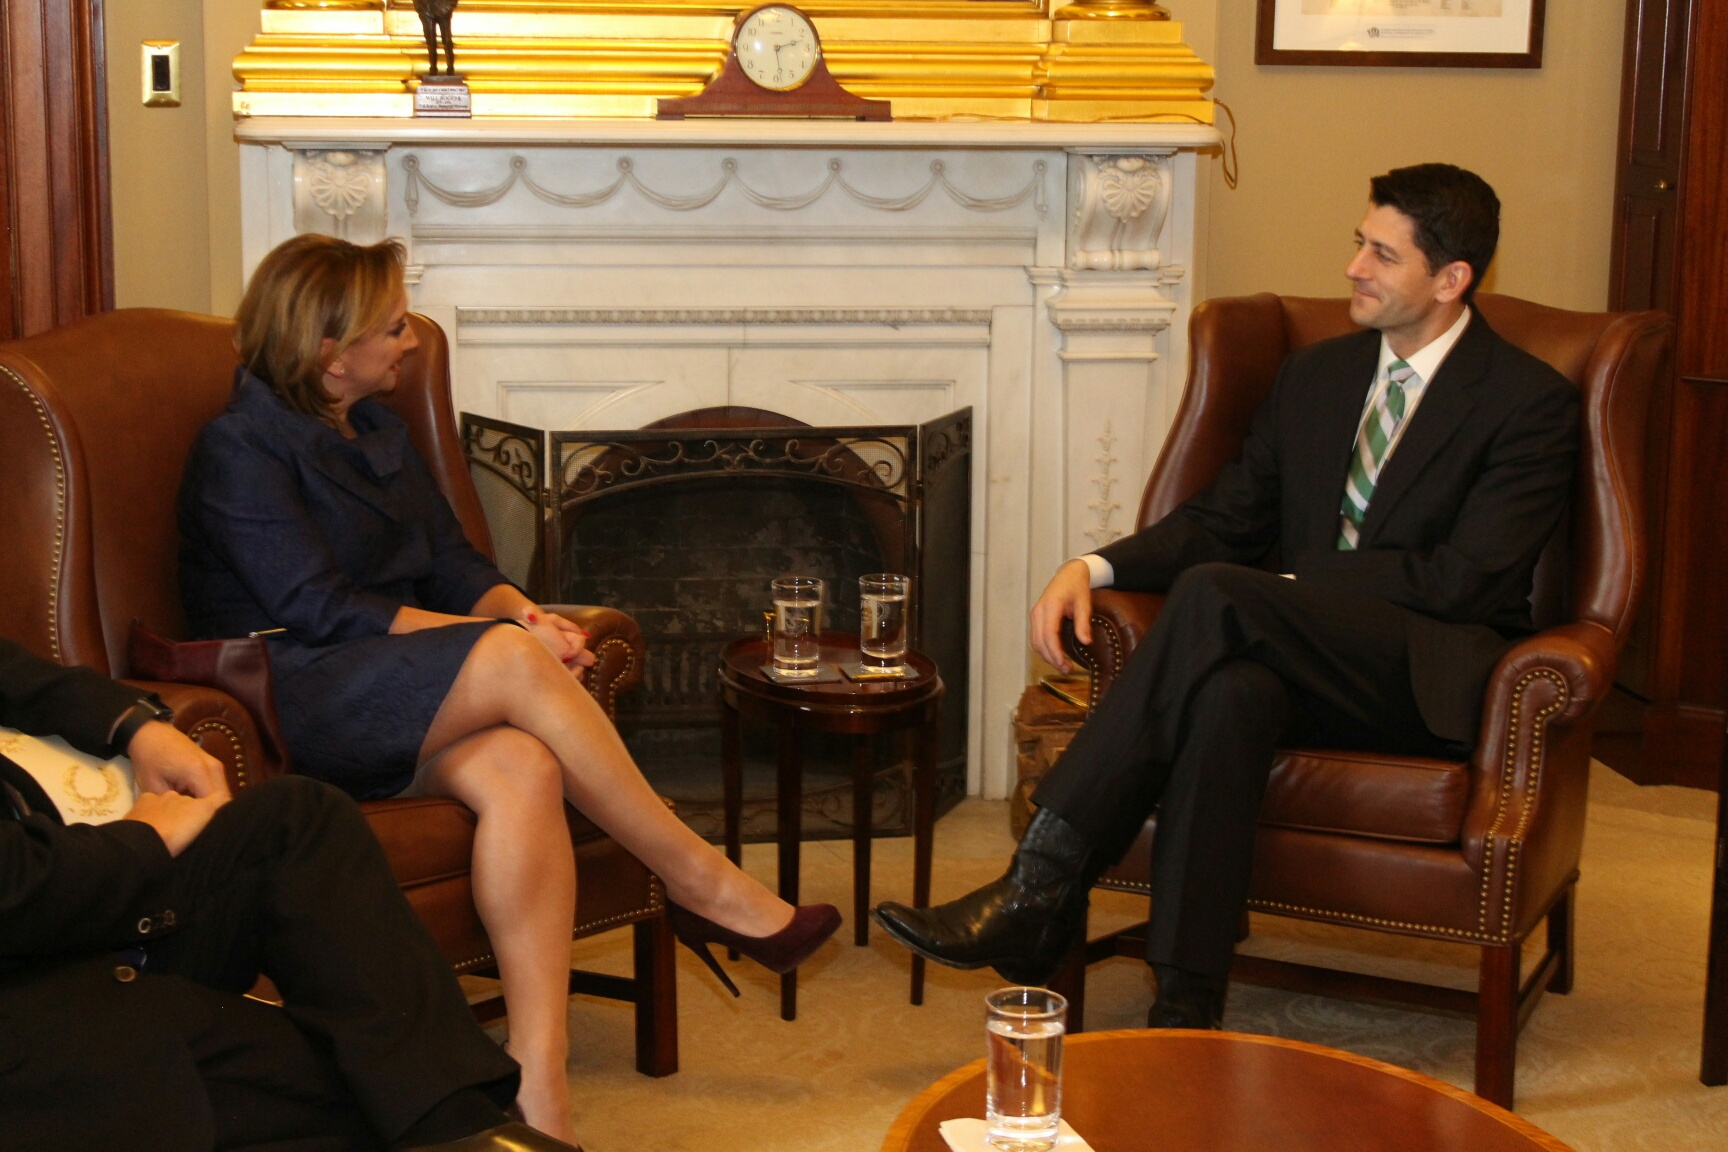 The Foreign Secretary and Paul Ryan, Speaker of the U.S. House of Representatives